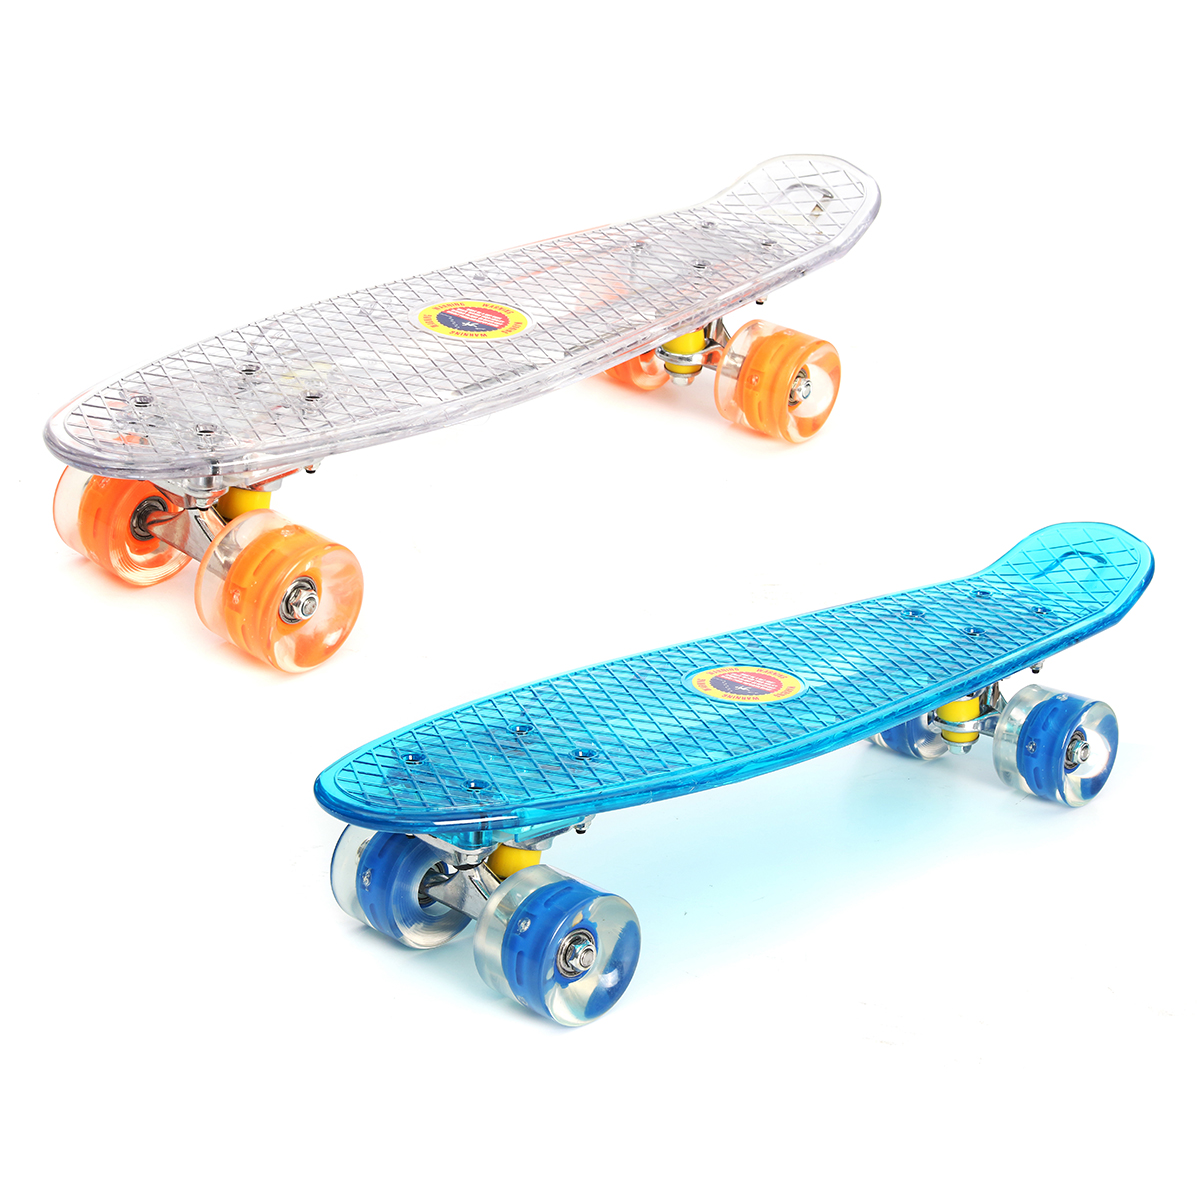 LED Penny Style Flashing Single Warped Four Wheel Skateboard Teenagers Kids Baby Happy Gift Shining SkateboardLED Penny Style Flashing Single Warped Four Wheel Skateboard Teenagers Kids Baby Happy Gift Shining Skateboard